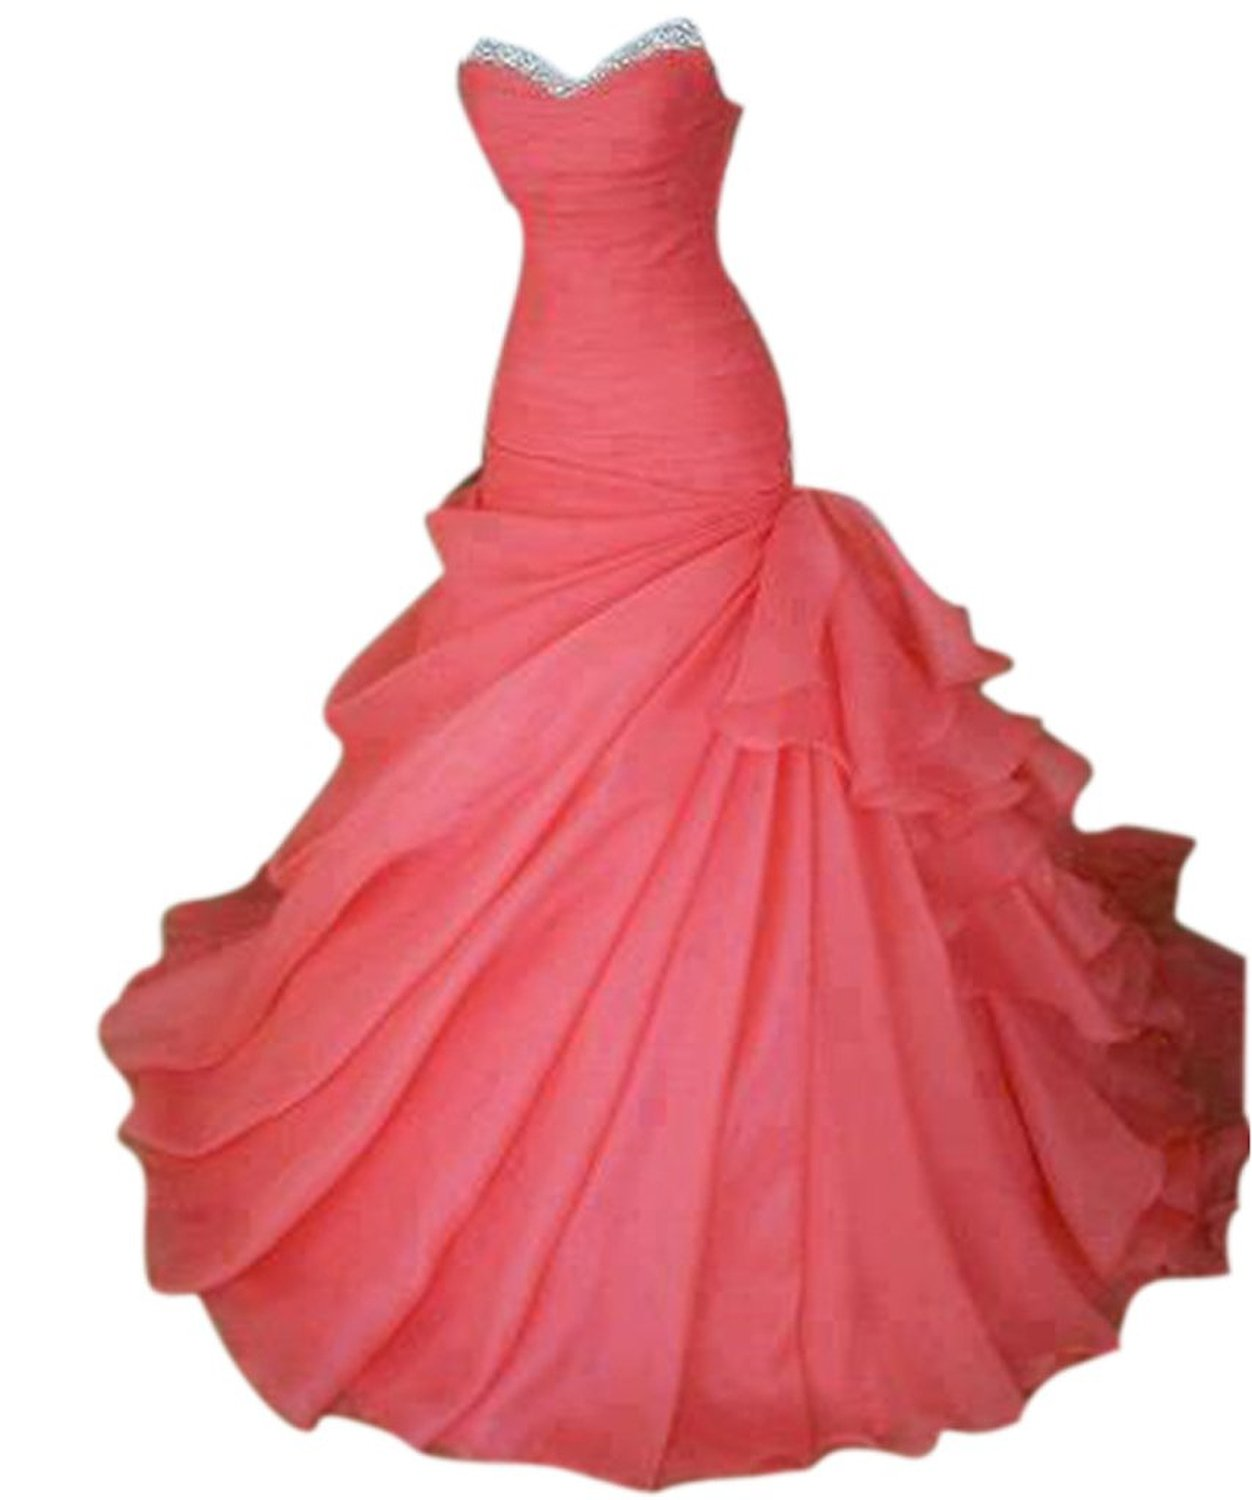 e5e593e0630c PrettyDresses Women s Ball Gown Sweep Train Formal Prom Party ...